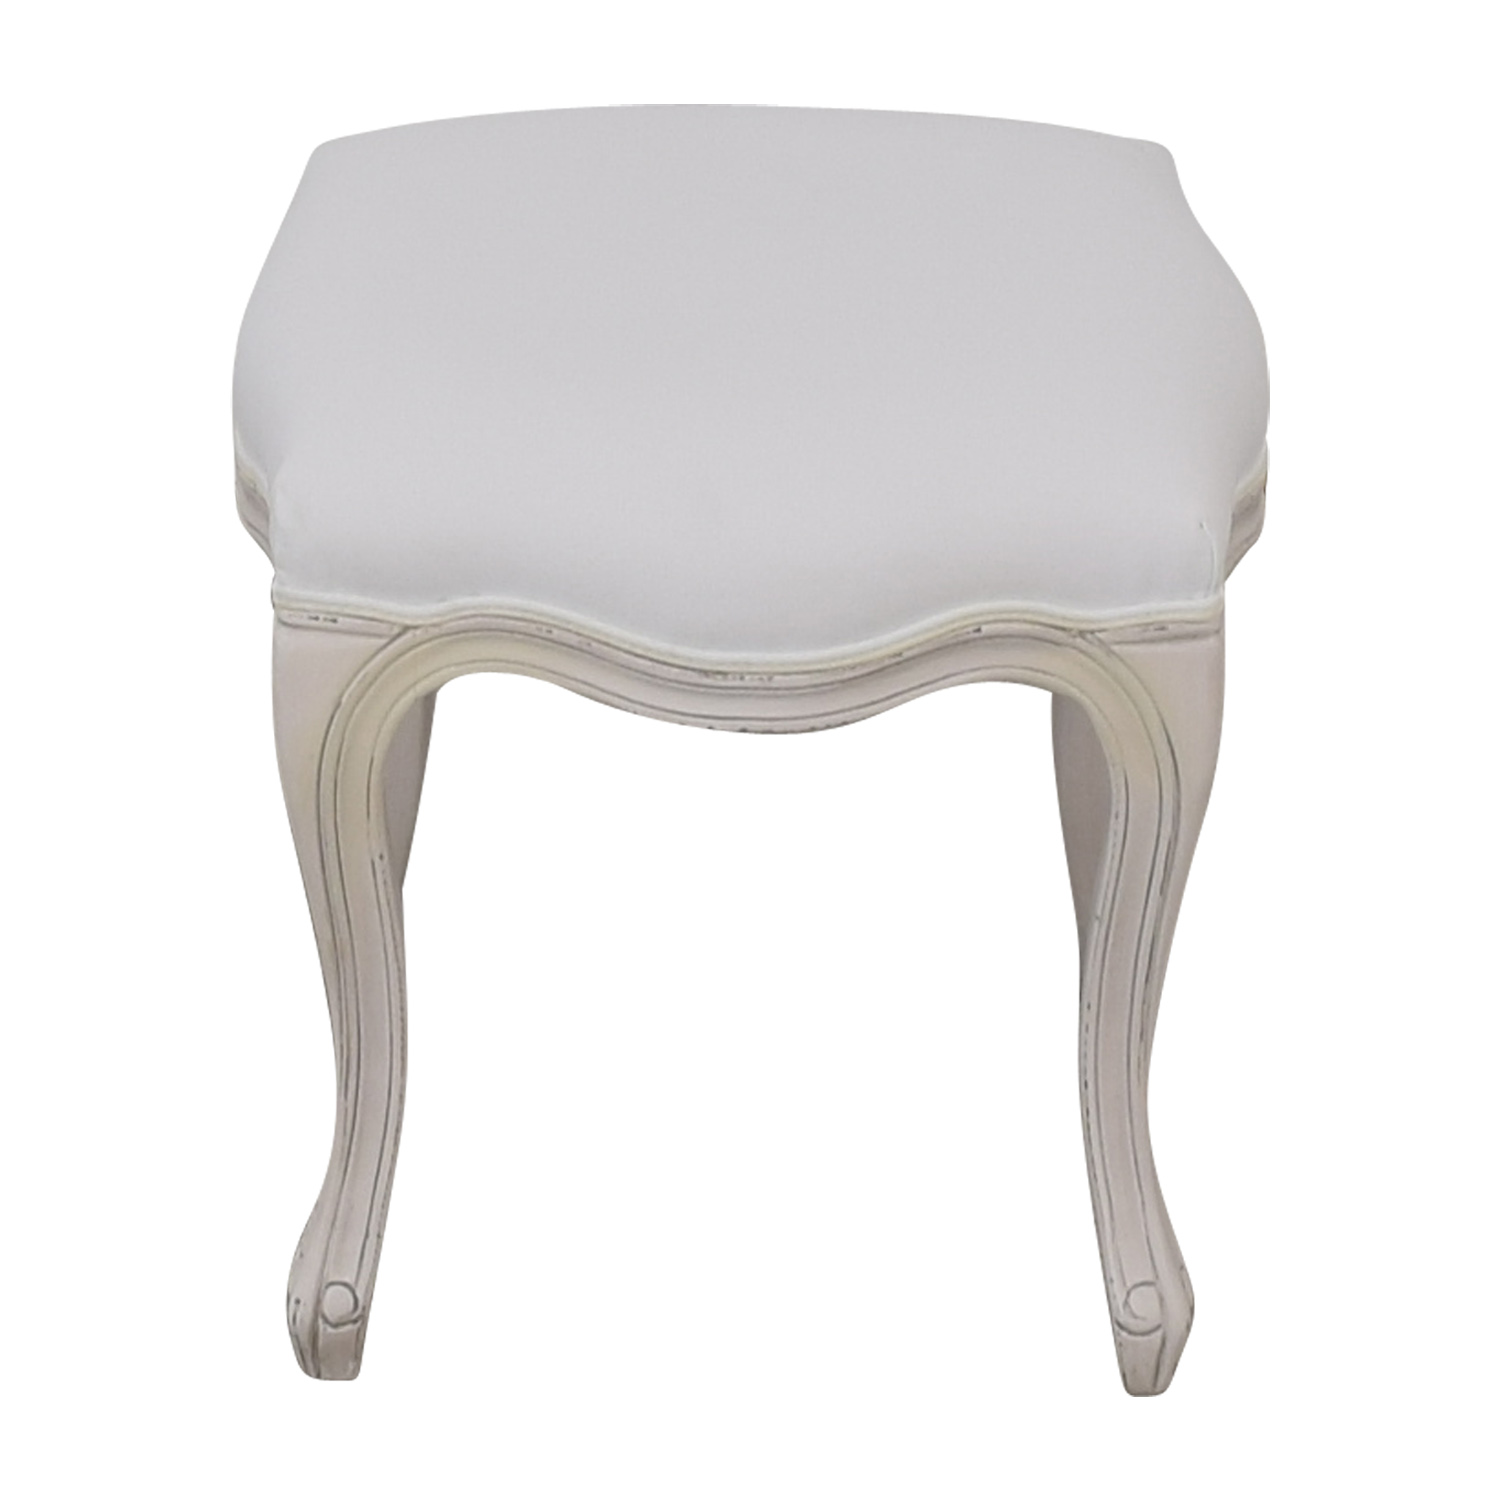 Restoration Hardware Restoration Hardware Sophie Upholstered Stool discount